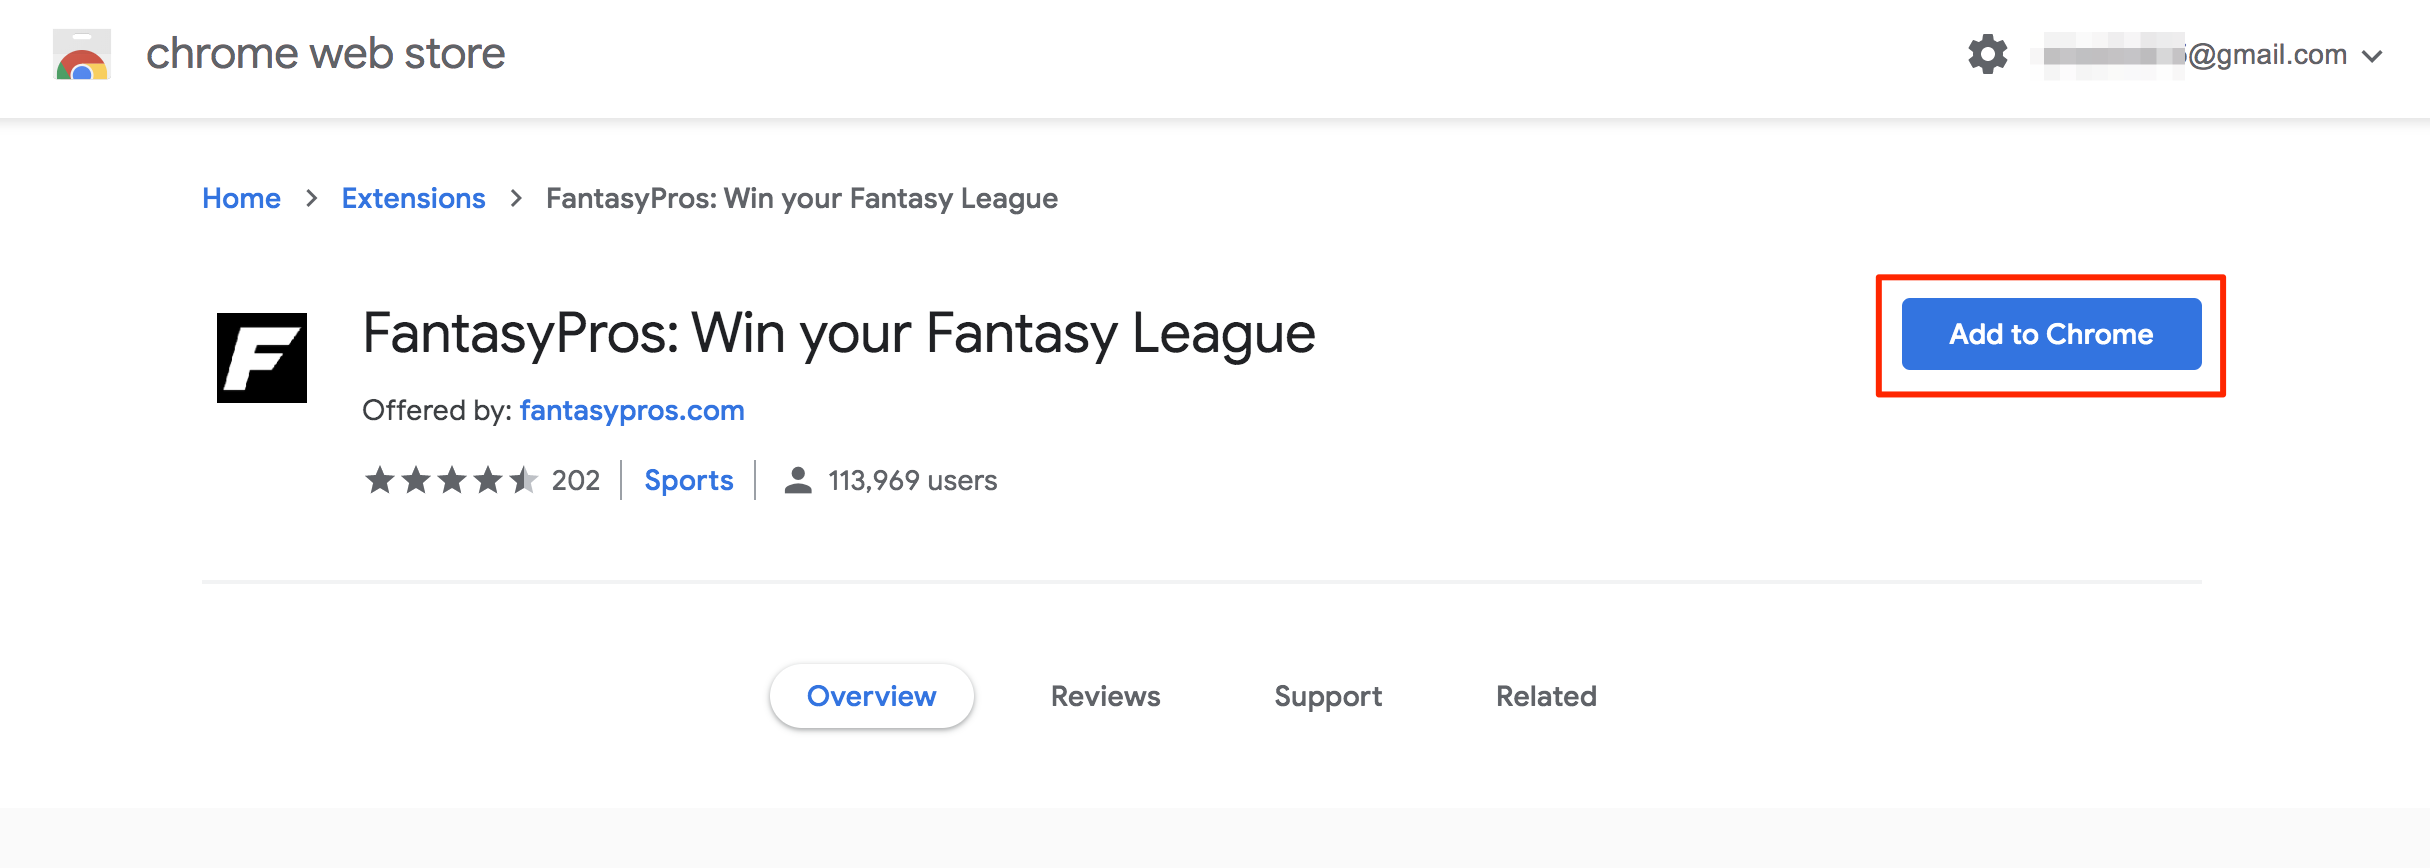 FantasyPros__Win_your_Fantasy_League_-_Chrome_Web_Store.png